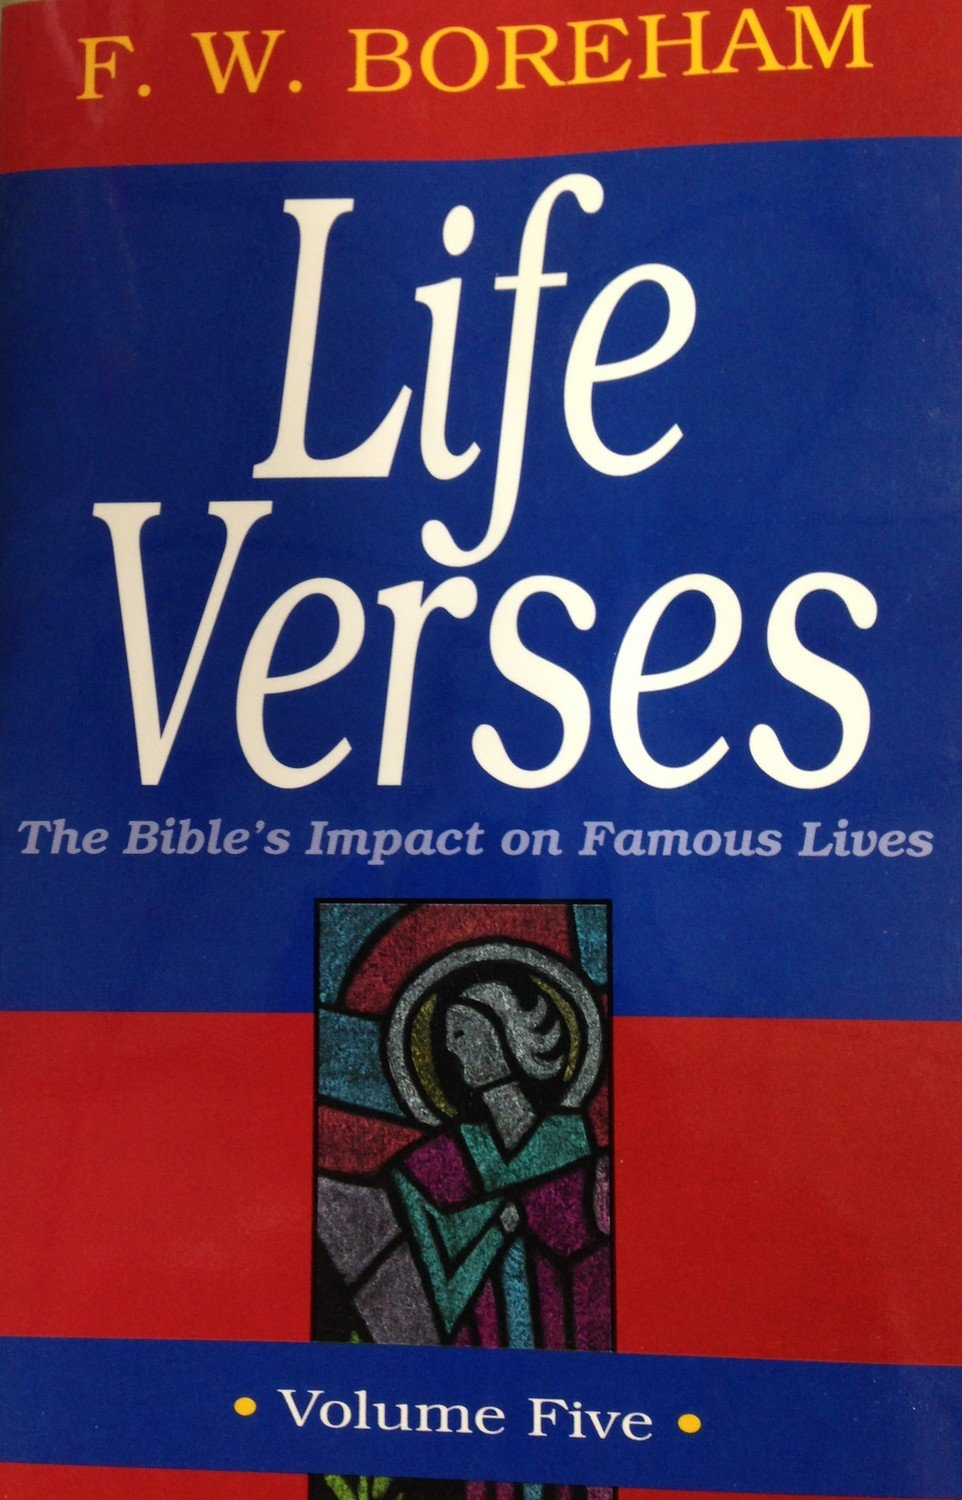 Life Verses:  The Bible's Impact on Famous Lives Volume 5 by F.W. Boreham